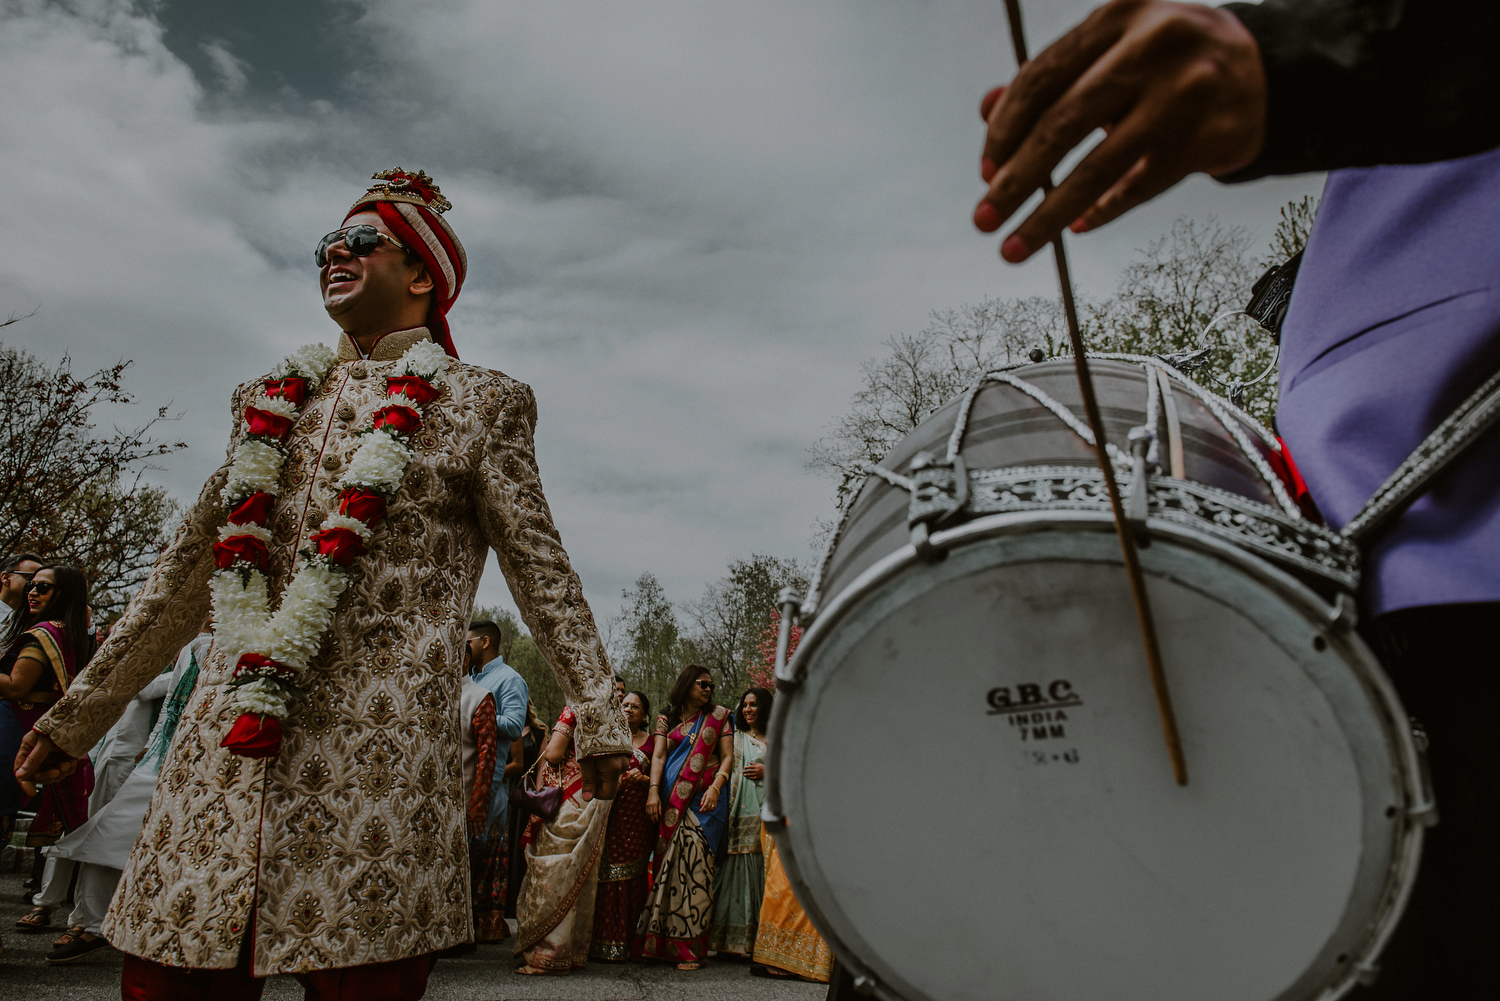 groom dances next to drums in baraat ceremony